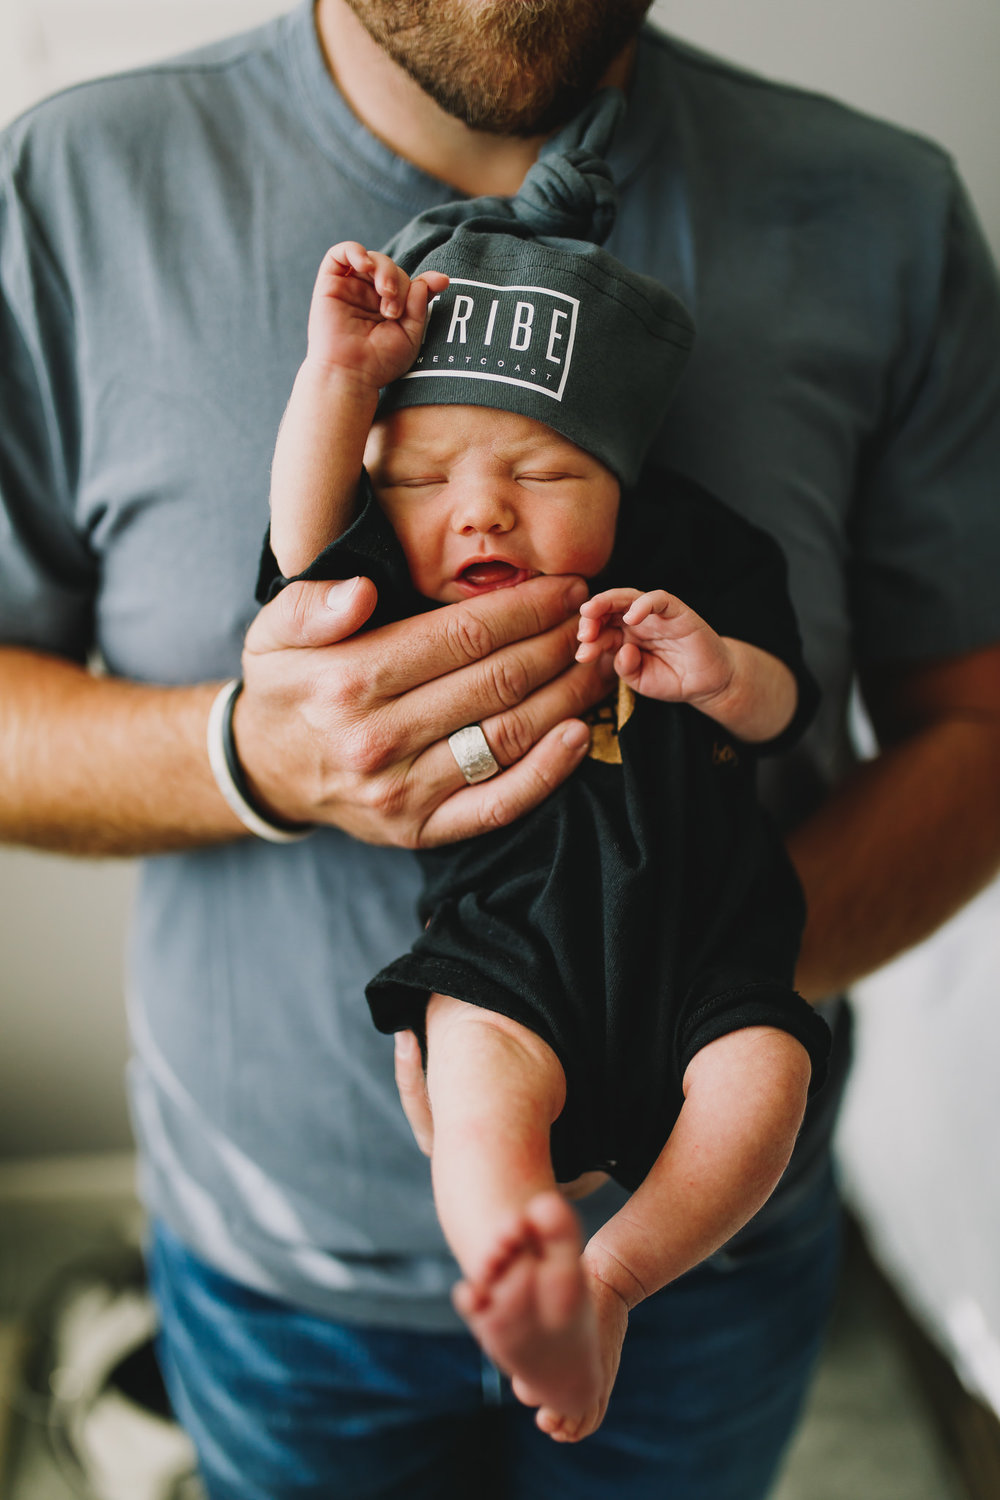 Archer Inspired Photography In Home Lifestyle Newborn Fresh 48 Family Documentary Session Morgan Hill San Jose California-86.jpg